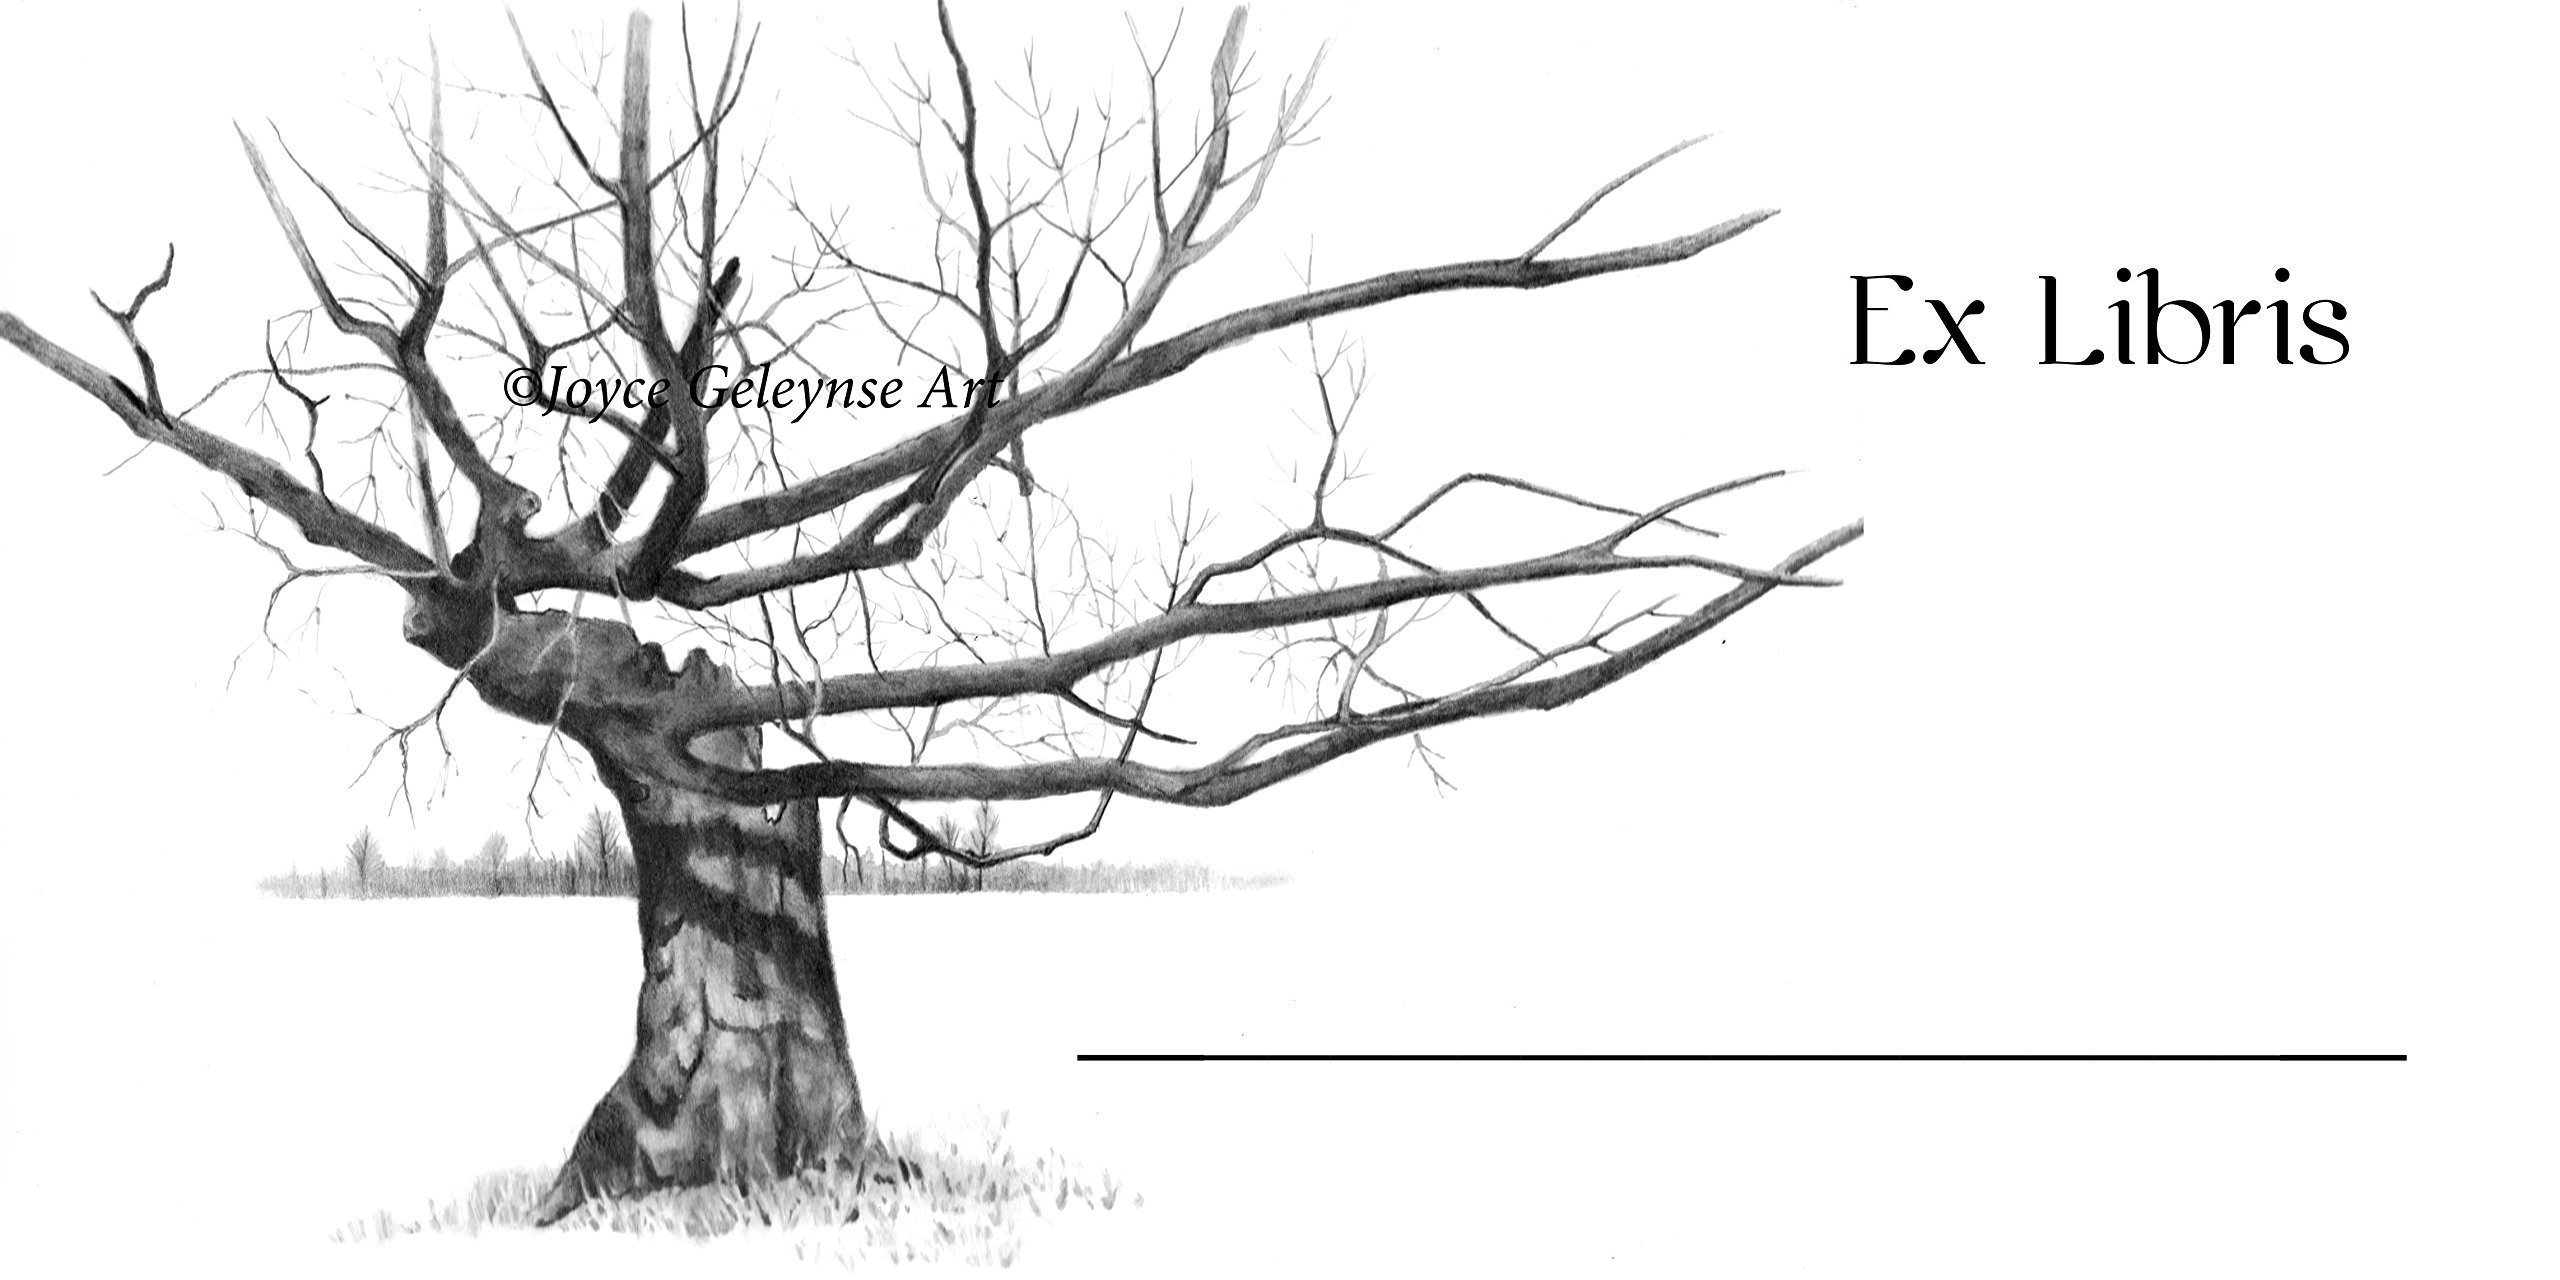 Book Stickers, Bookplate, Your Name,''EX LIBRIS'', Pencil Drawing of Gnarly, Weather-Beaten Bare Tree, Branches, With FREE Bookmark